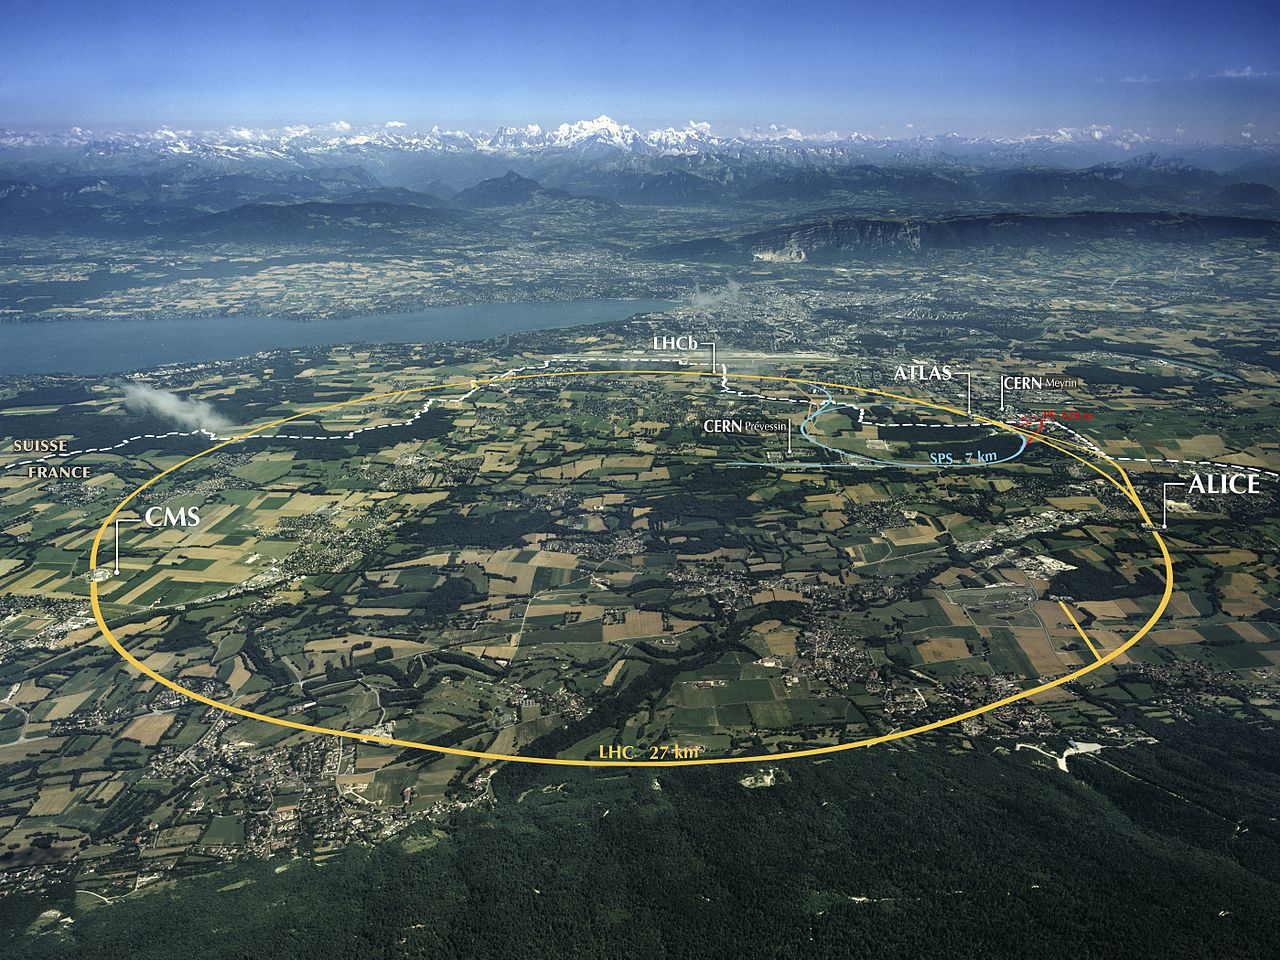 Vista aérea do CERN.